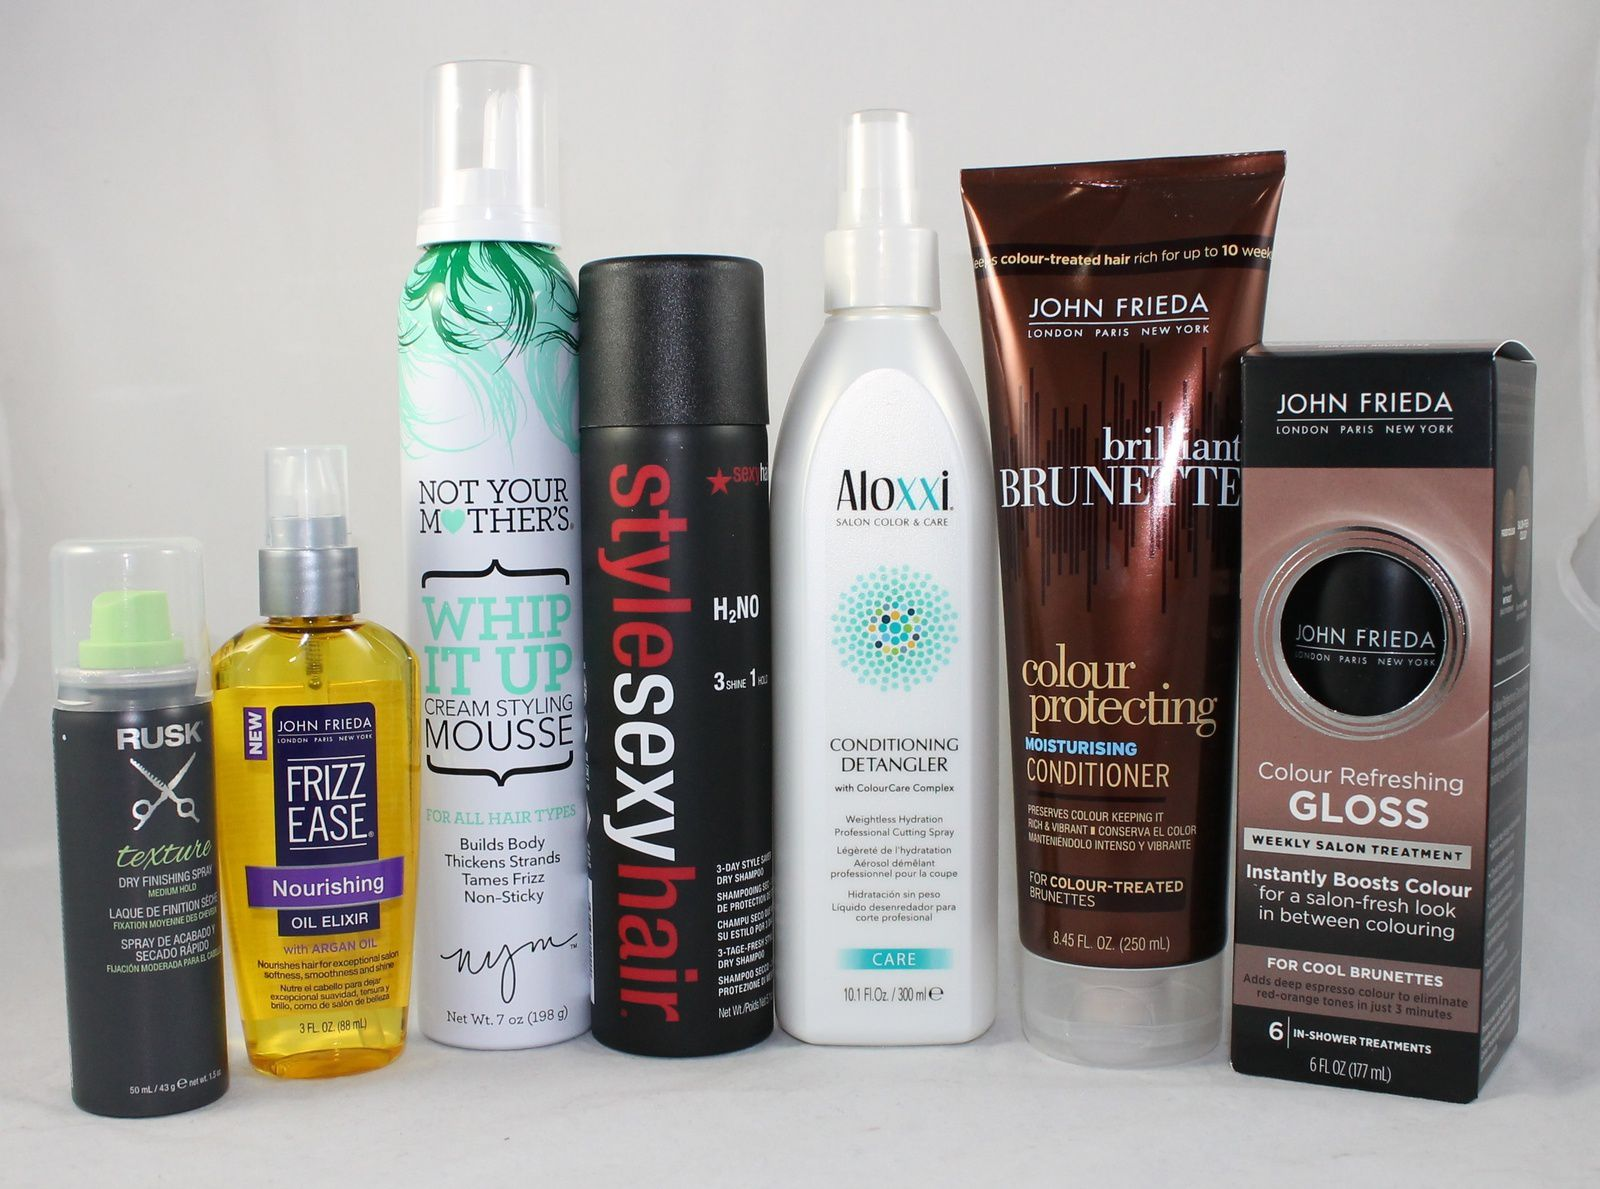 RUSK® Texture spray, JOHN FRIEDA® Frizz Ease® Nourishing Oil Elixir, NOT YOUR MOTHER'S® Whip It Up™ Cream Styling Mousse, STYLE SEXY HAIR® H2No 3 Day Style Saver Dry Shampoo, ALOXXI Conditioning Detangler, JOHN FRIEDA® Brilliant Brunette® Colour Protecting Moisturising Conditioner, JOHN FRIEDA® Colour Refreshing Gloss For Cool Brunettes